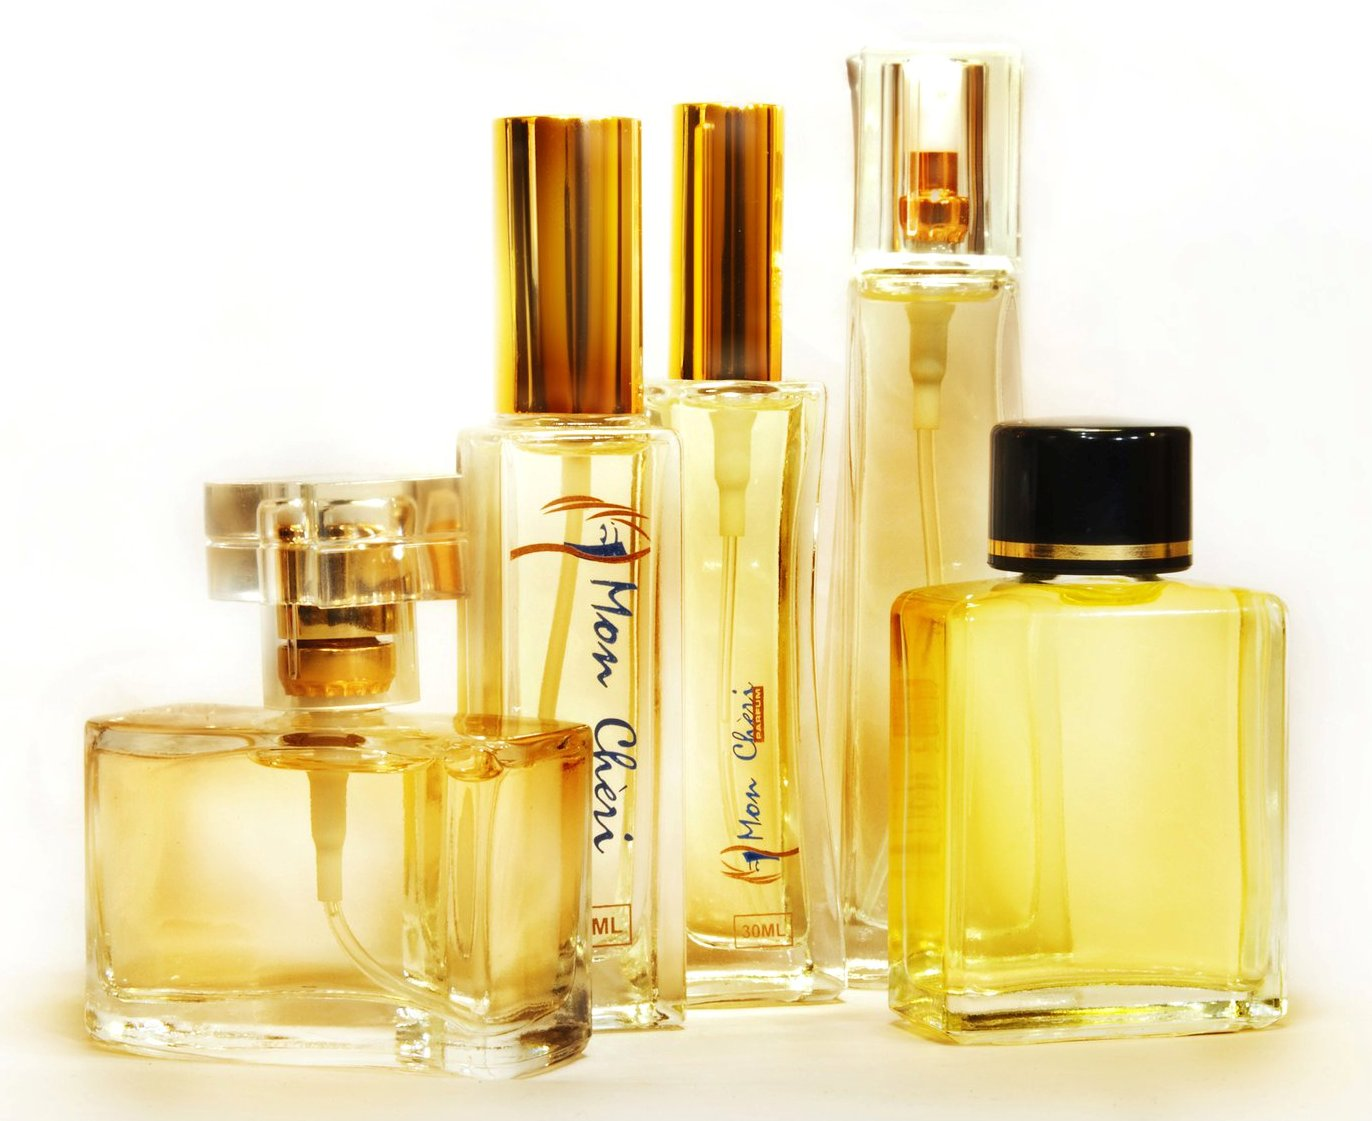 Chaussure  pense Liege 1319 in addition Royal Secret Perfume in addition 2013hsvgtsreview02 moreover 45 in addition Top Dune Cortininha De Tiras Preto Dune 361135978. on dune perfume for